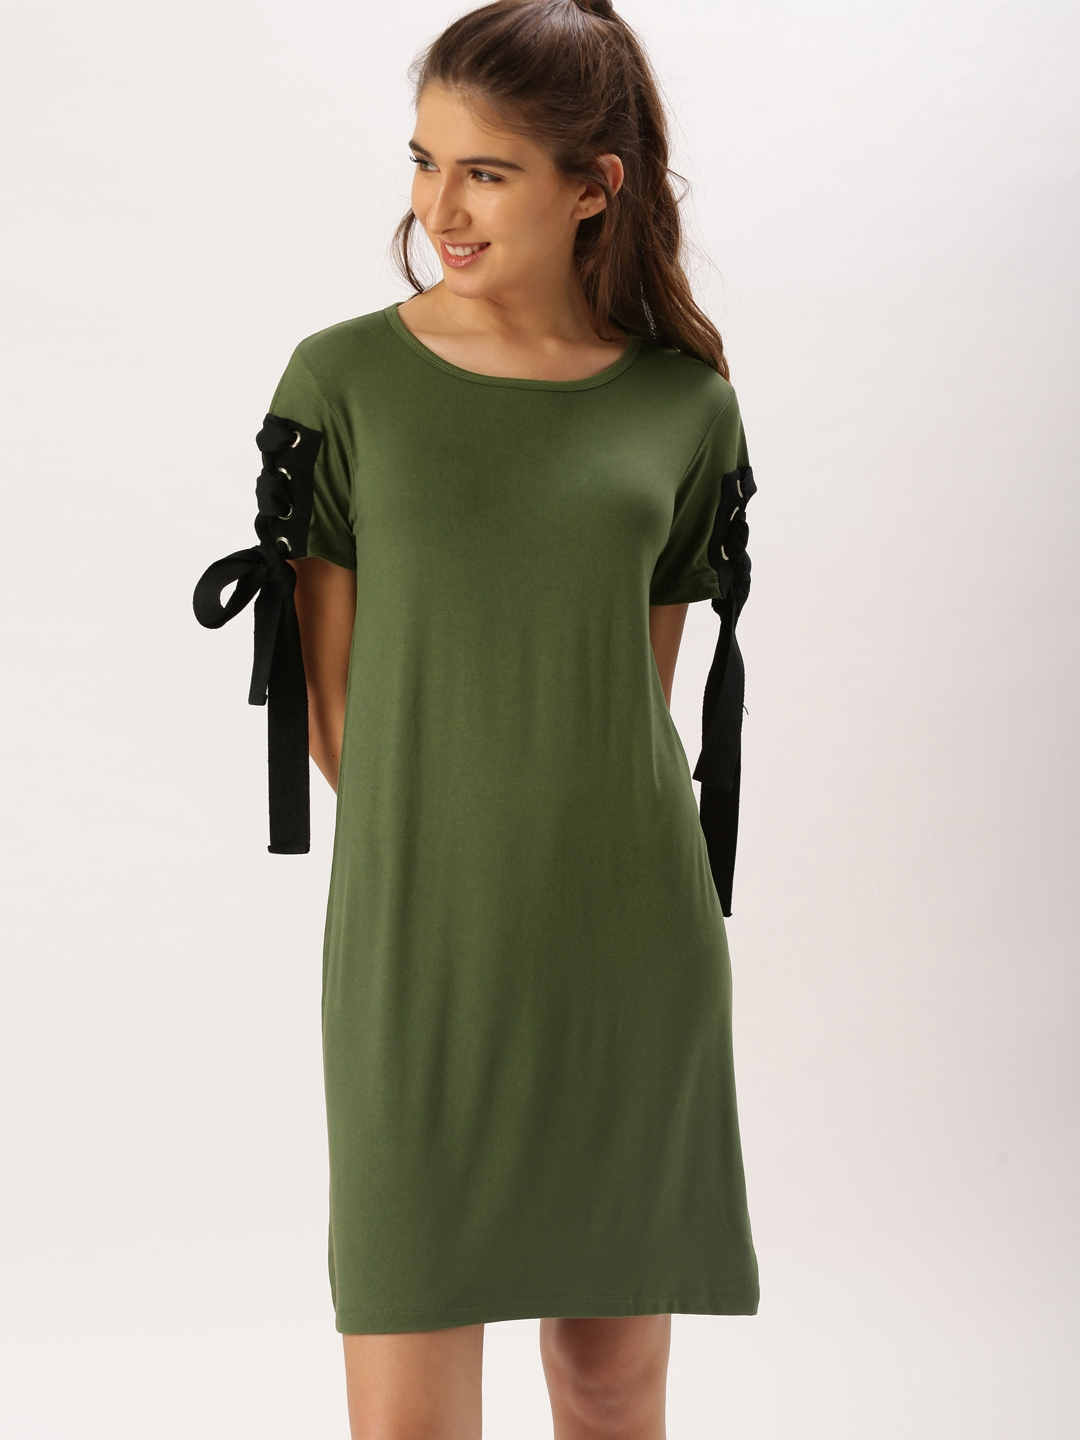 Buy DressBerry Women Olive Green Solid T Shirt Dress - Dresses for ... 87cb98393e